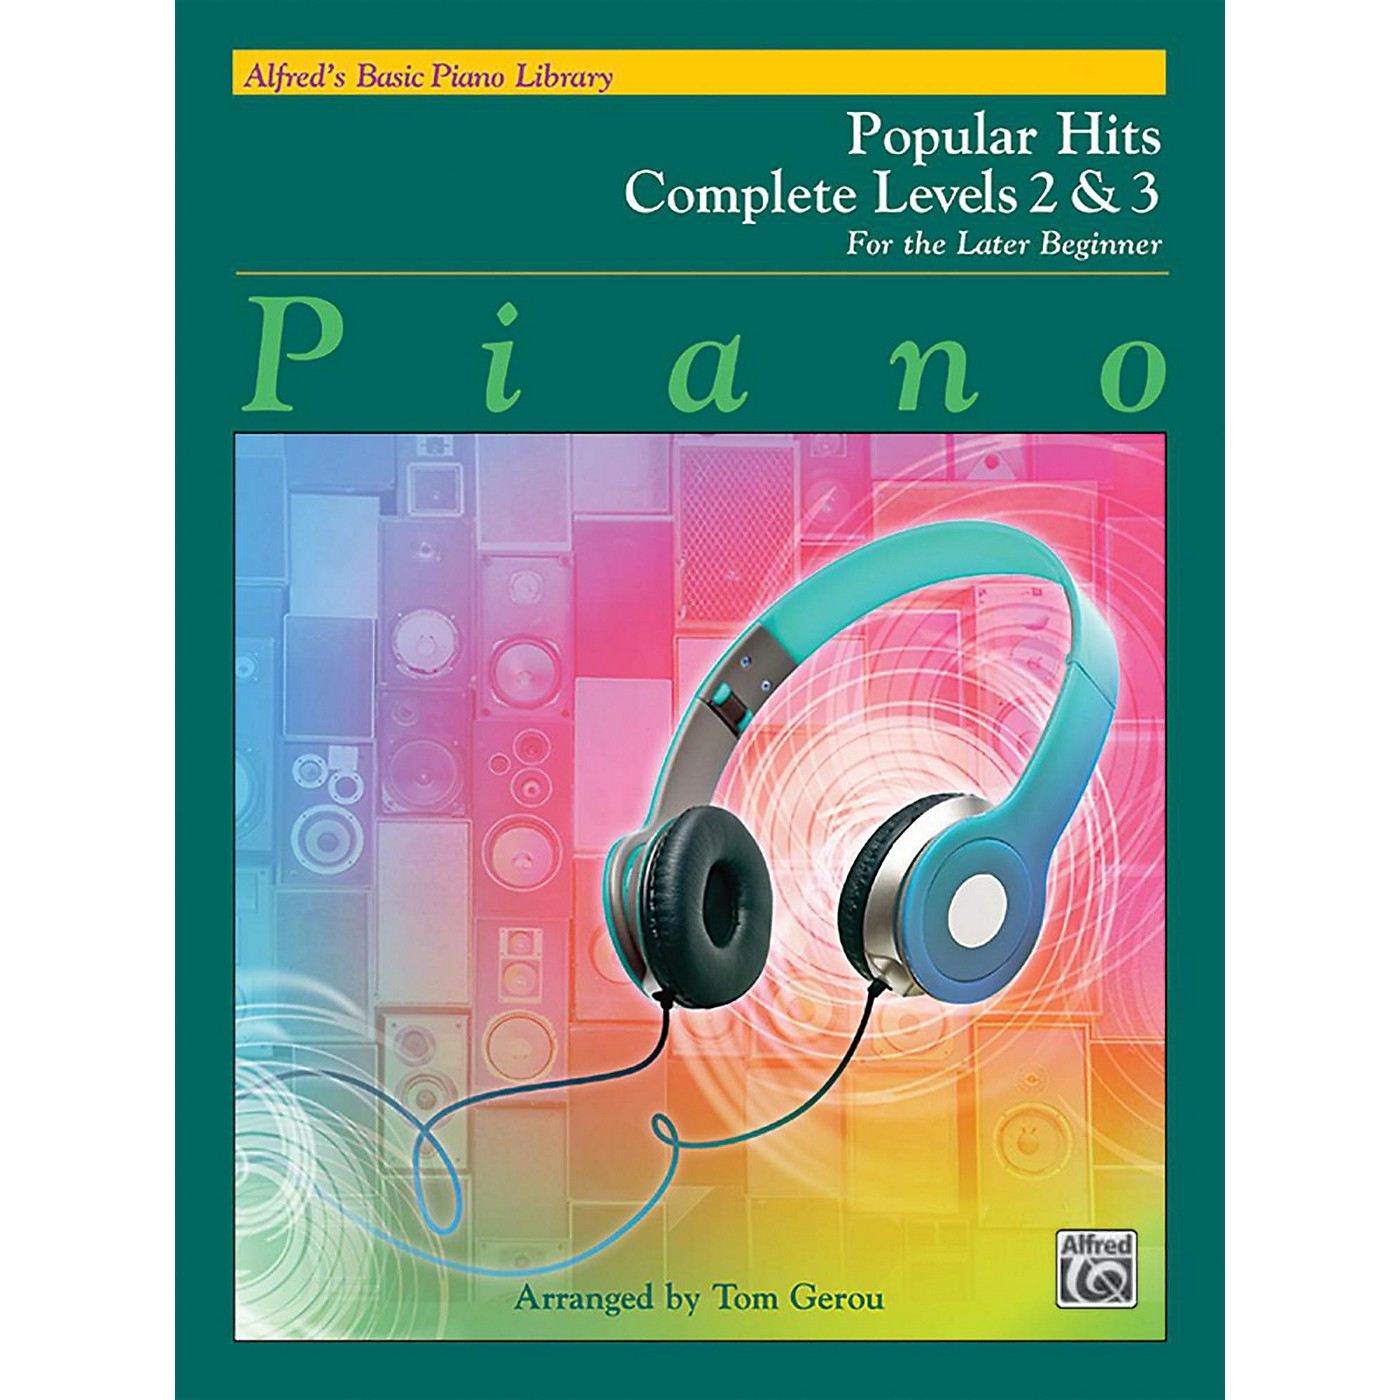 Alfred Alfred's Basic Piano Library - Popular Hits Complete Levels 2 & 3 thumbnail